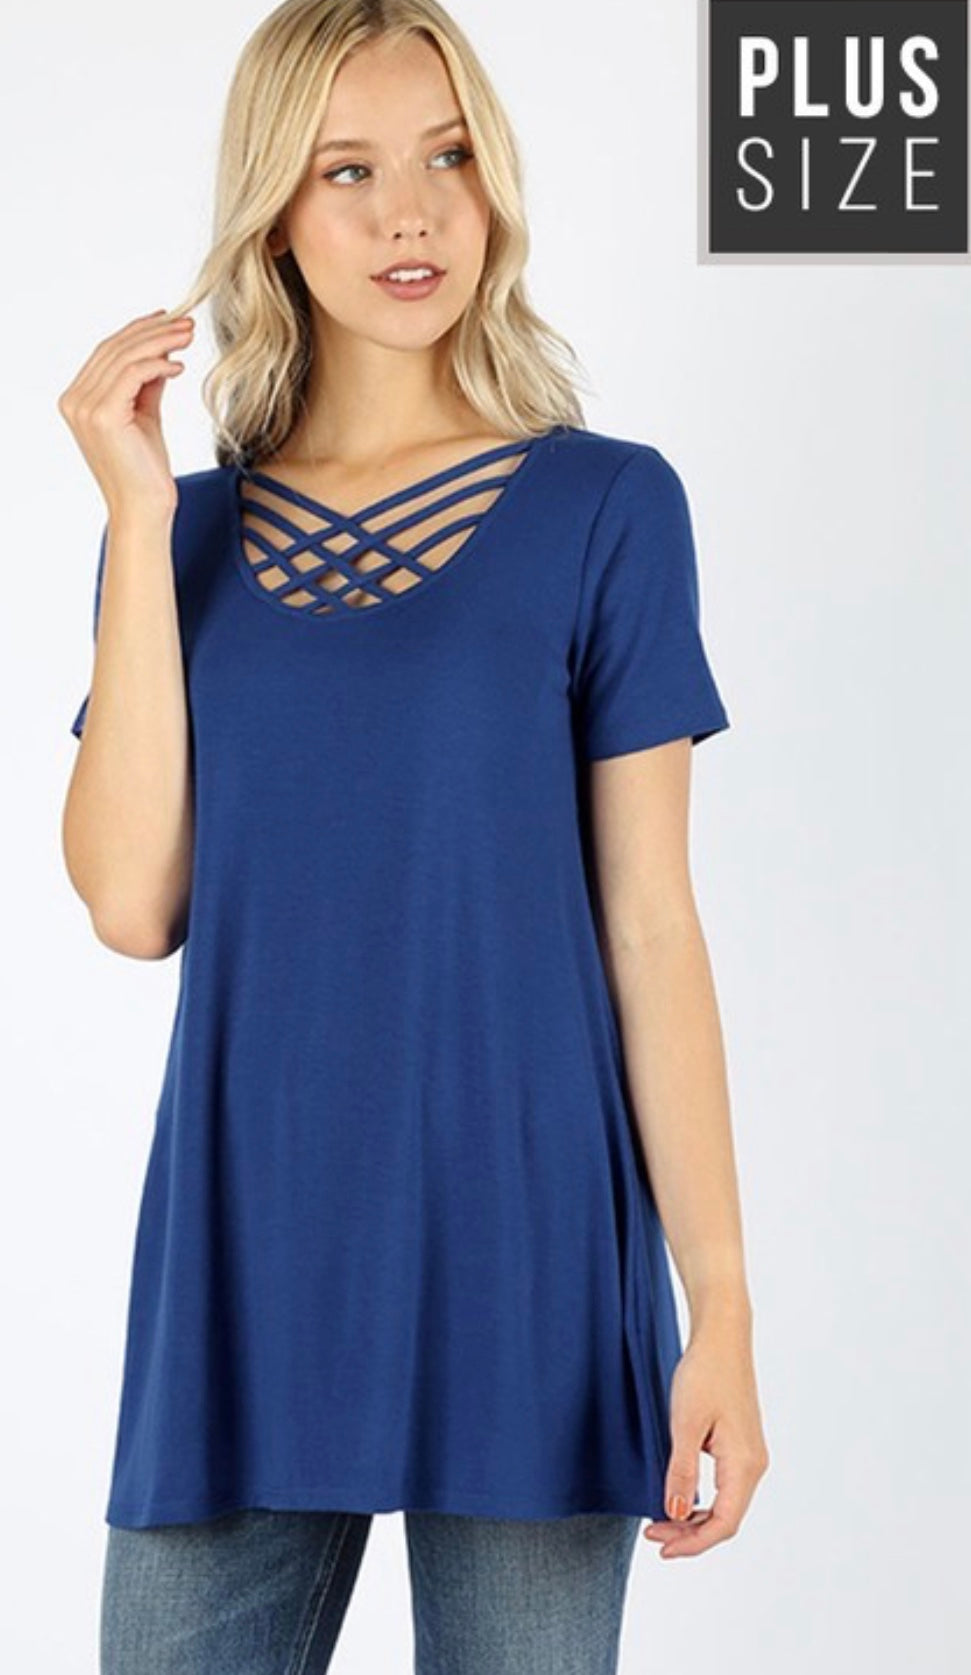 Lattice Swing Top in Sapphire with Free Shipping